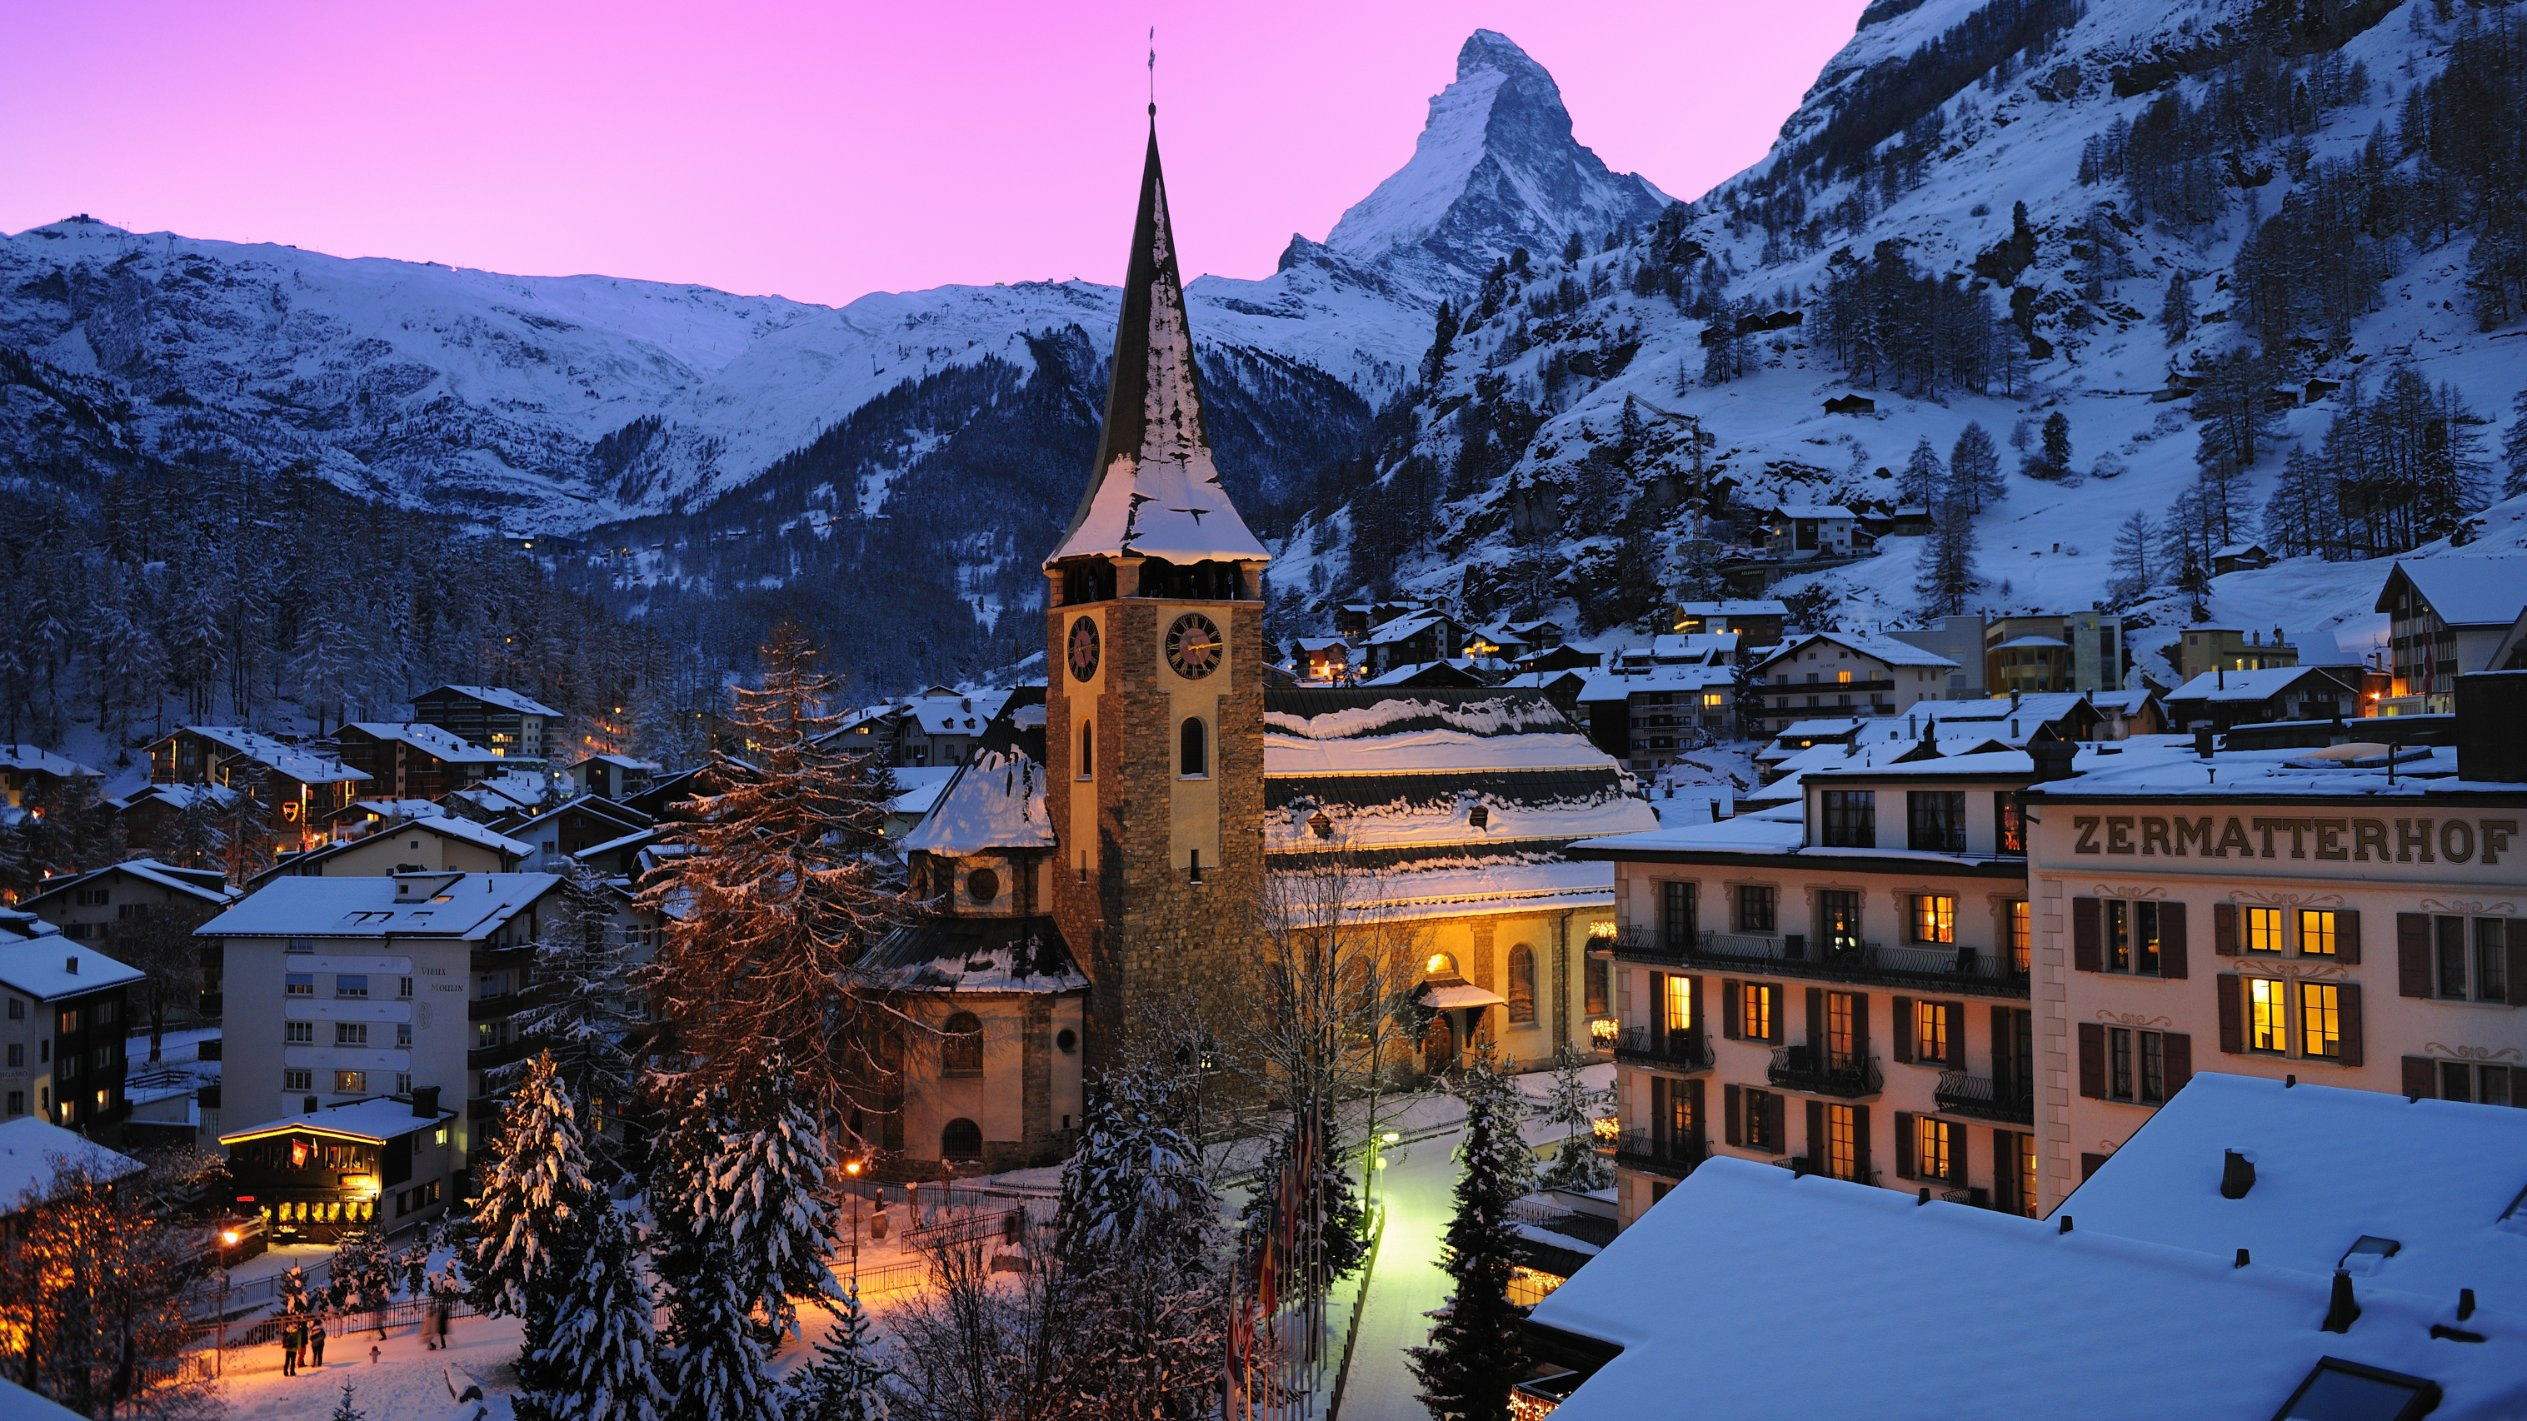 10 prettiest ski resorts in Europe for alpine fans ff450b025